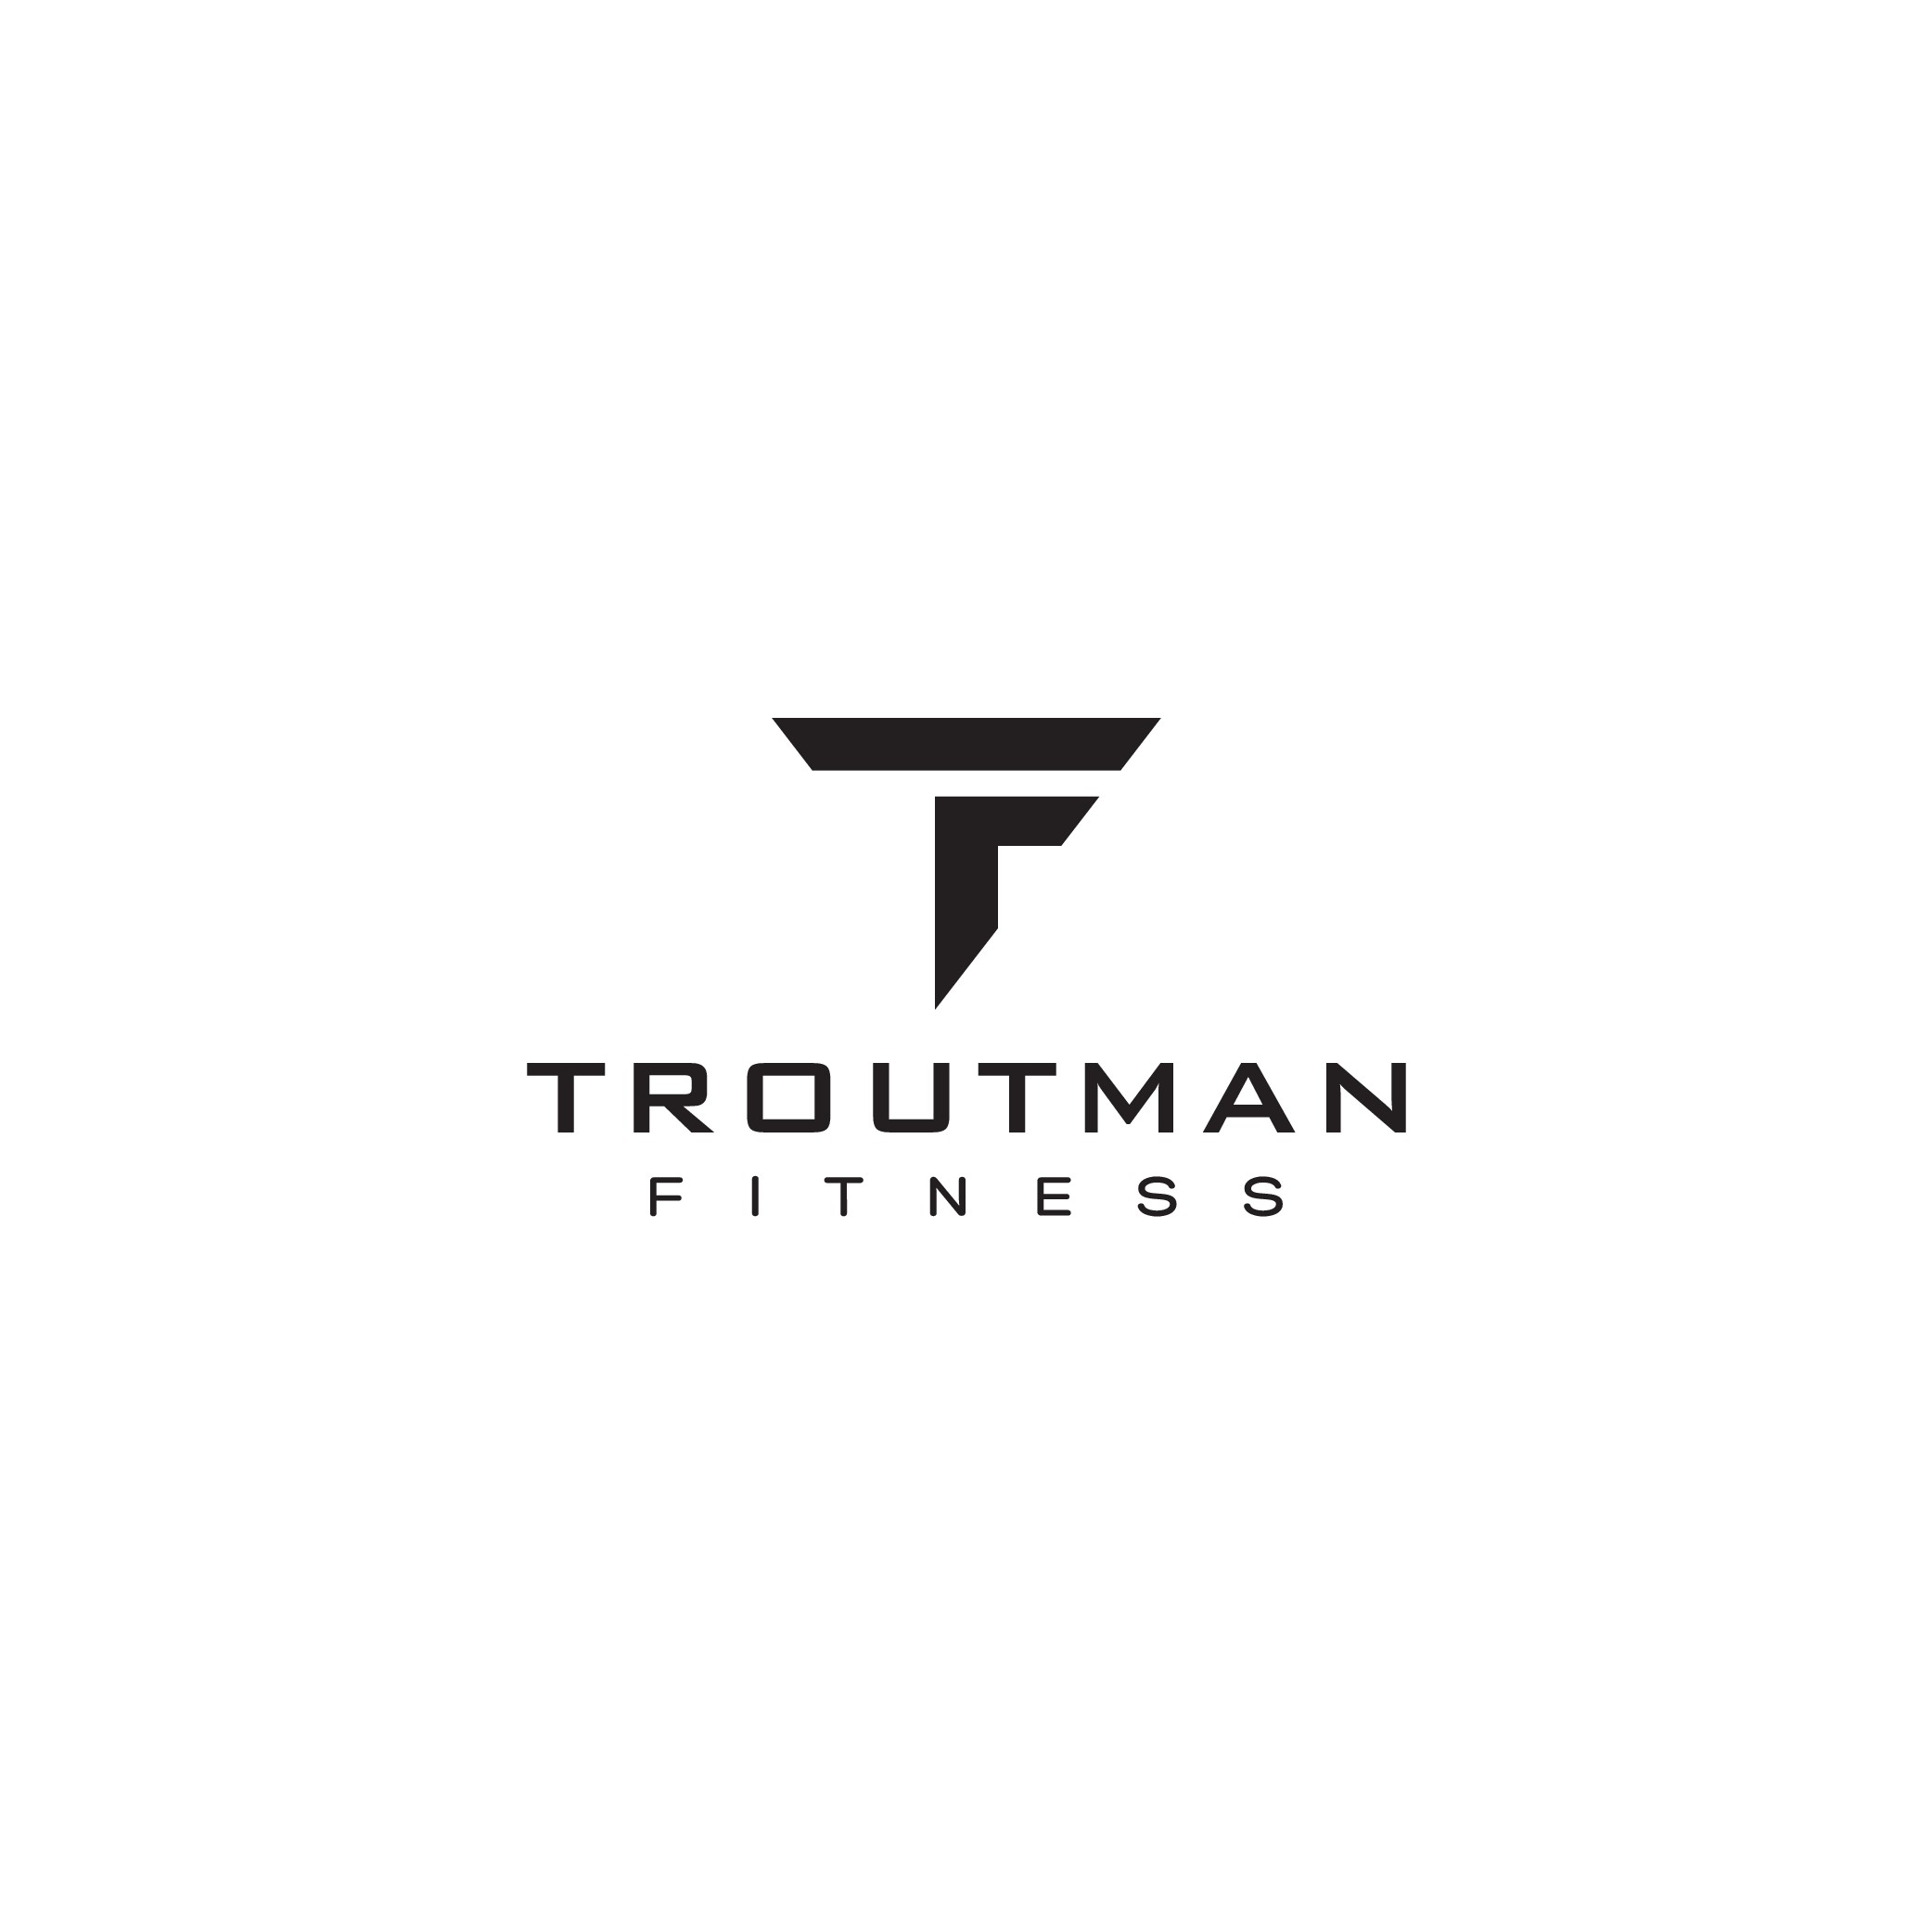 Top tier fitness coach needs a logo to create brand recognition for his movement.